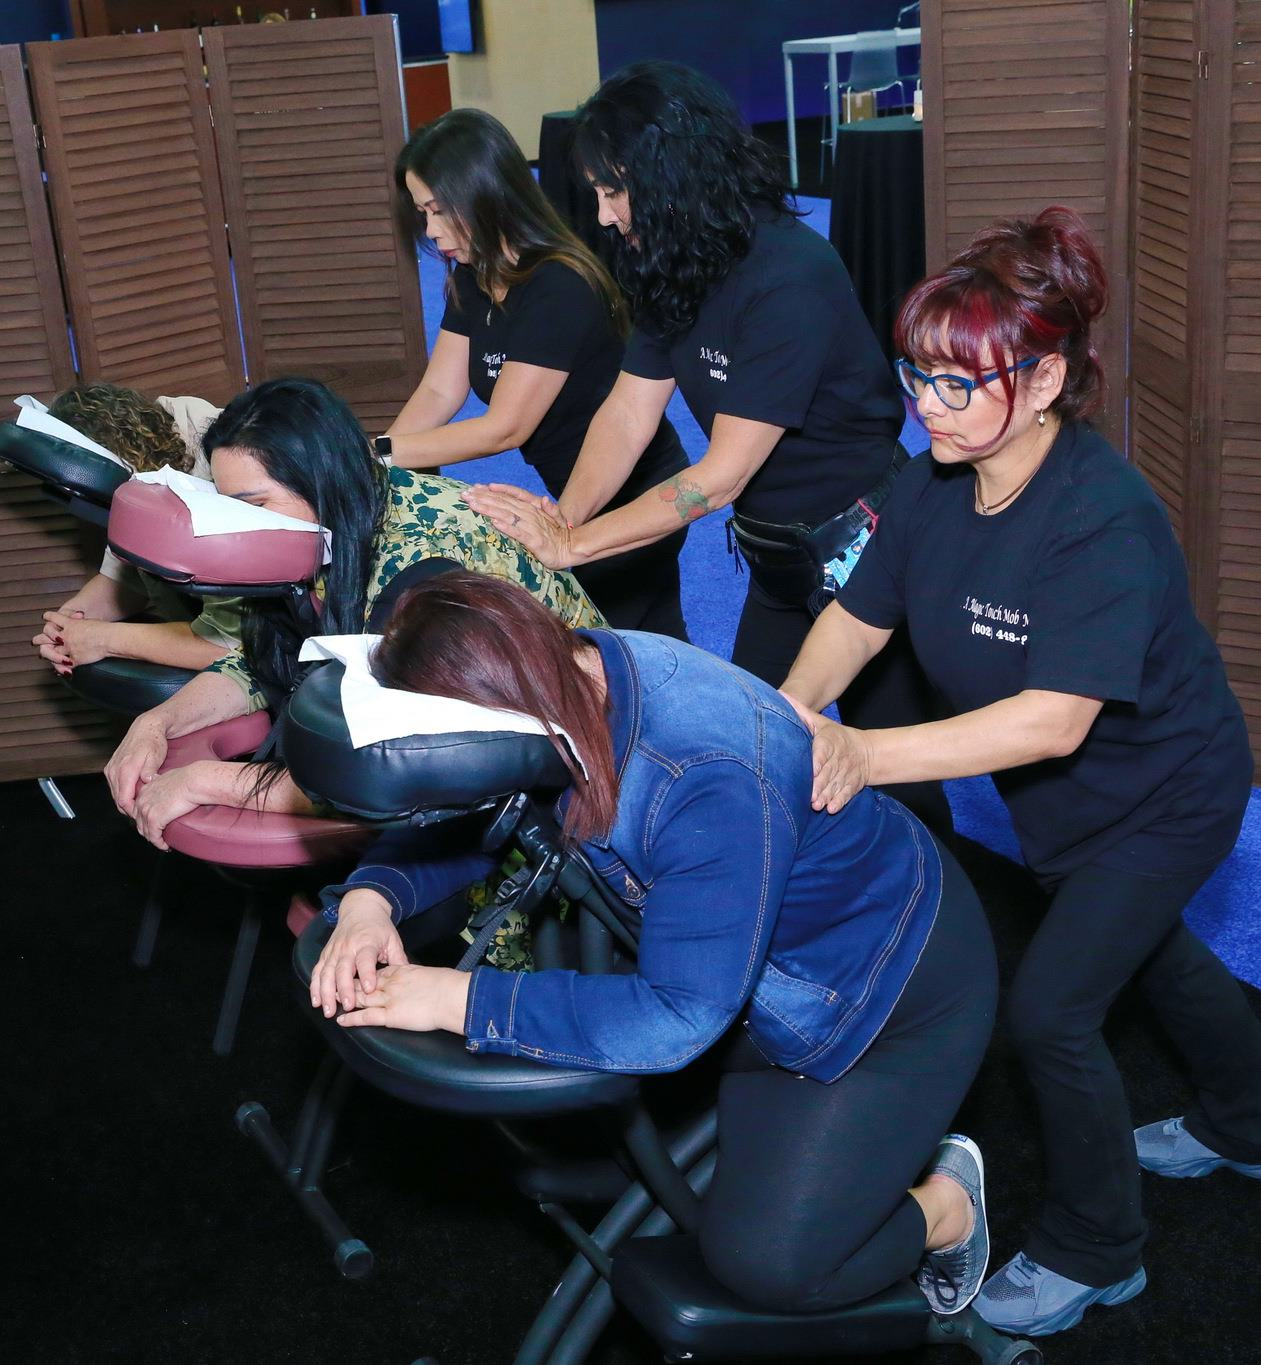 chair massage therapists working 2019 2-cropped2